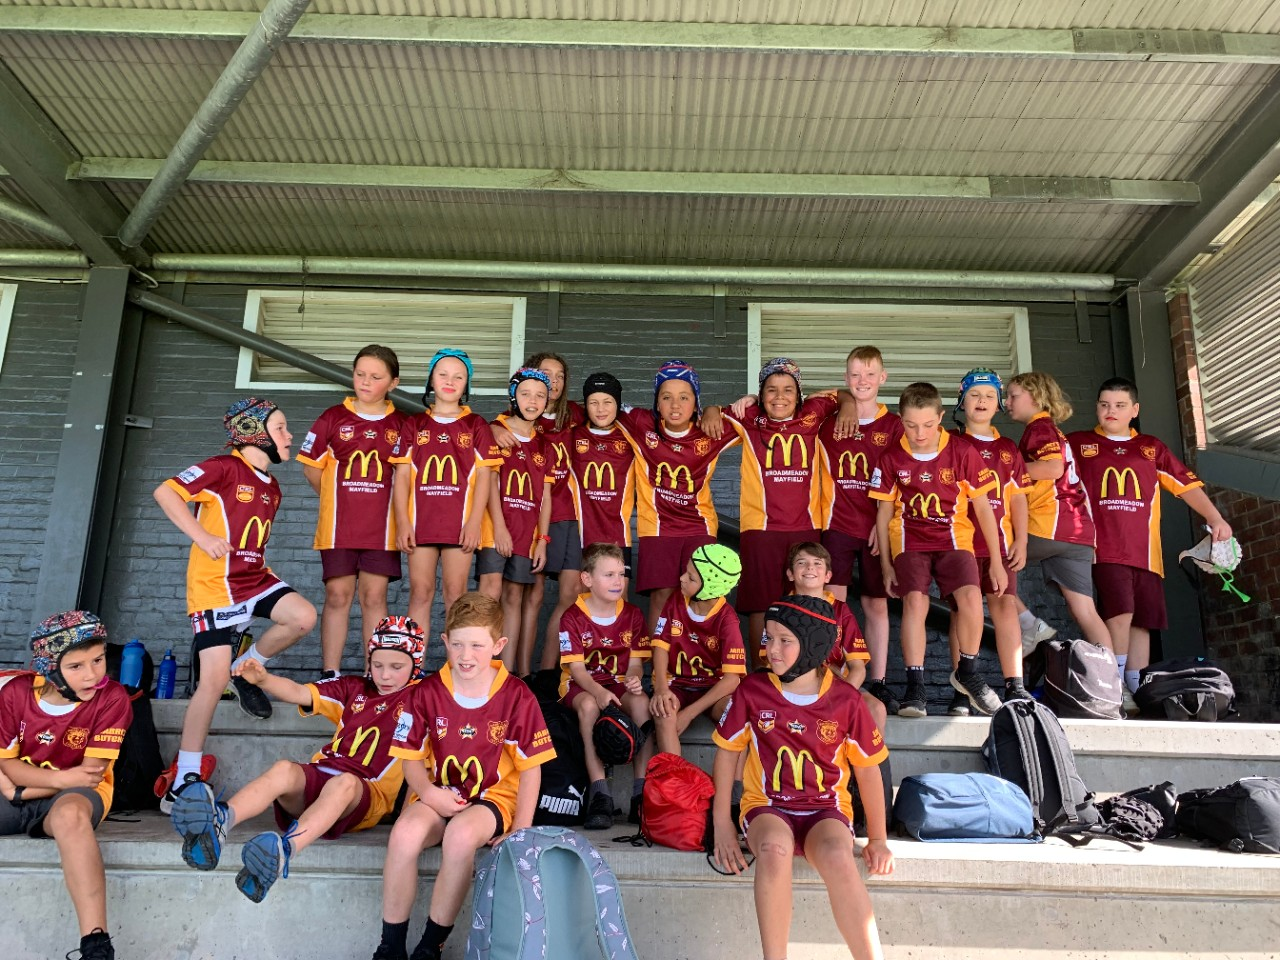 The Waratah Public School Rugby 7's team preparing for their first game.